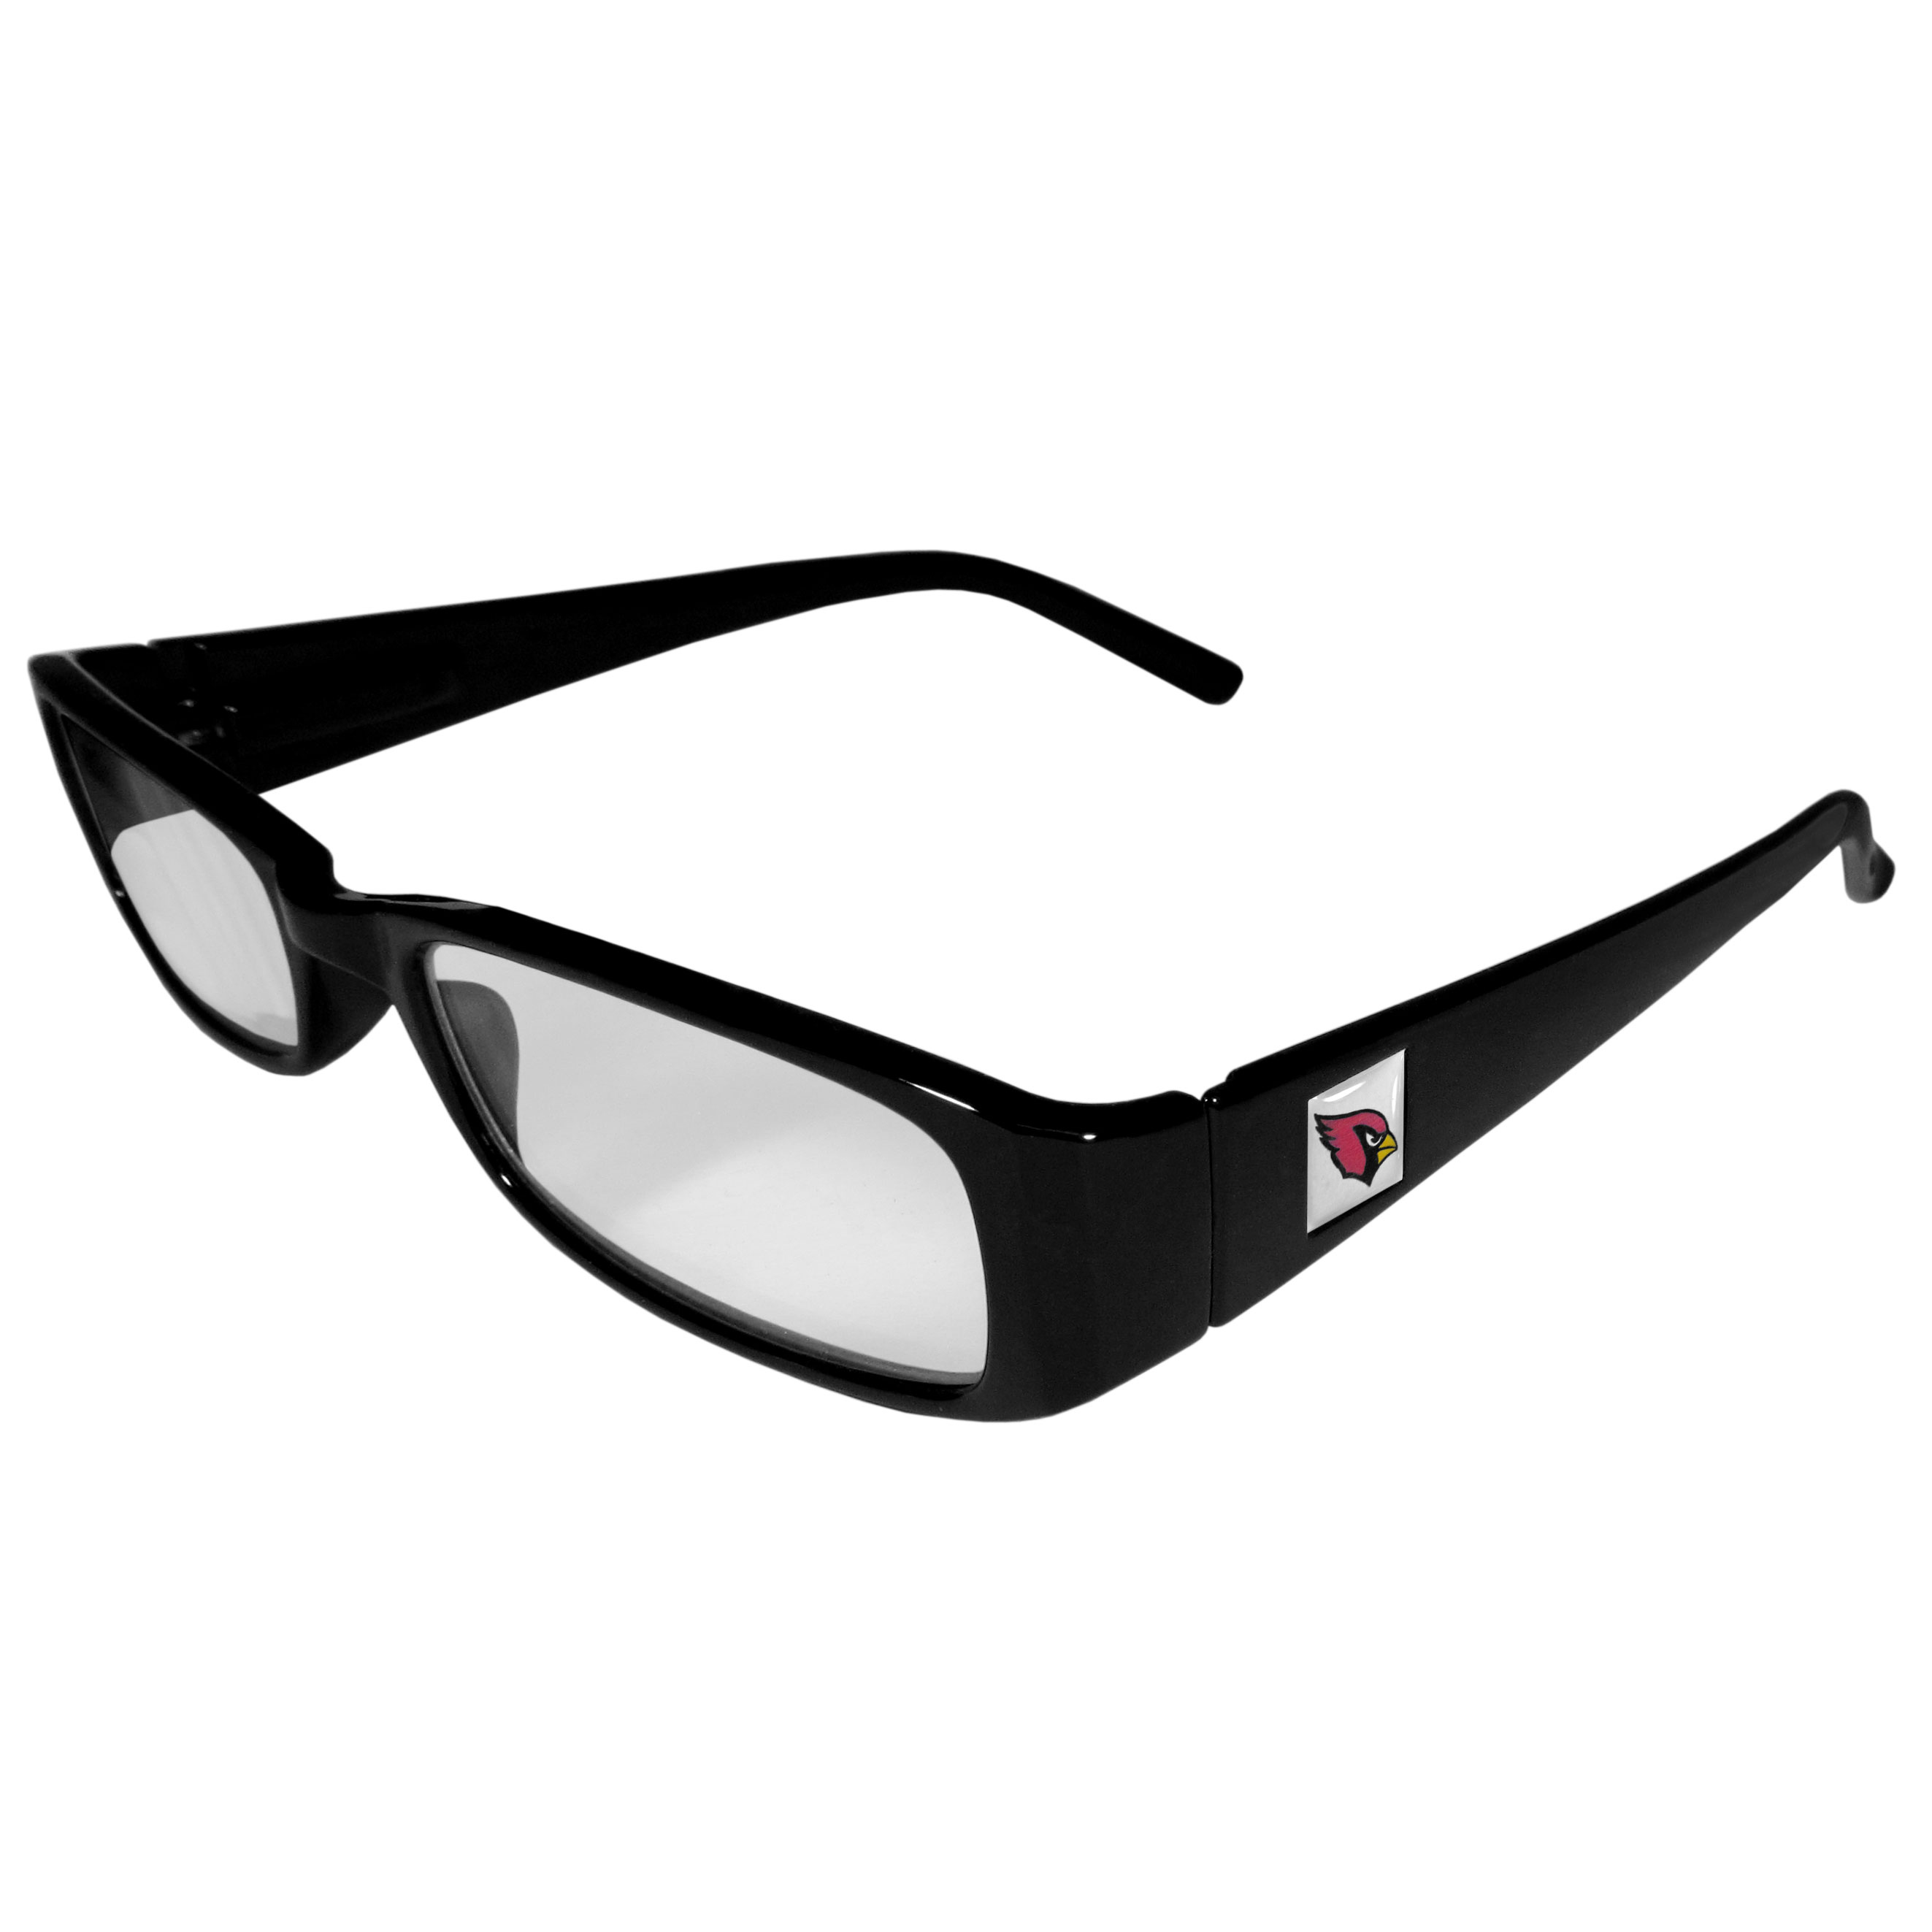 Arizona Cardinals Black Reading Glasses +1.25 - Our Arizona Cardinals reading glasses are 5.25 inches wide and feature the team logo on each arm. Magnification Power 1.25